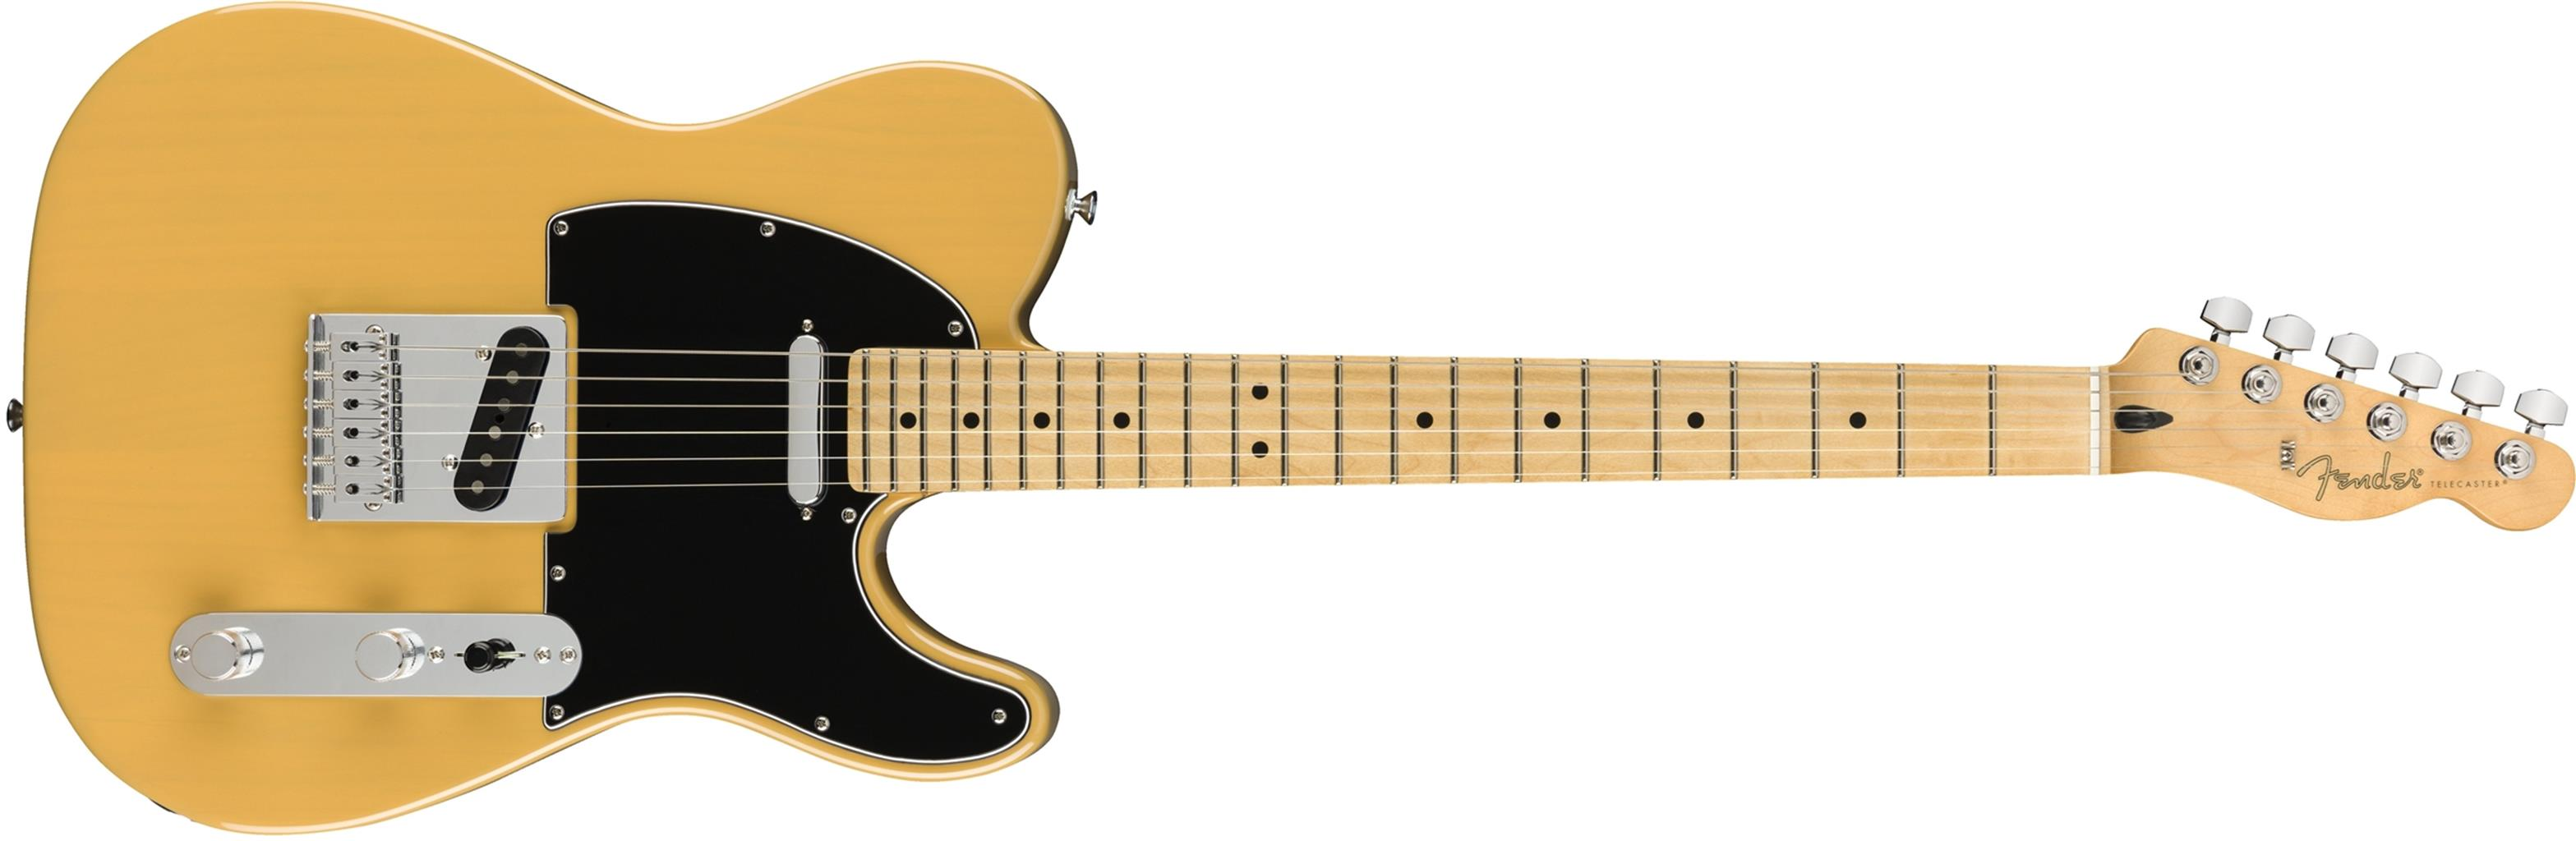 FENDER Player Telecaster Butterscotch Blonde MN  0145212550